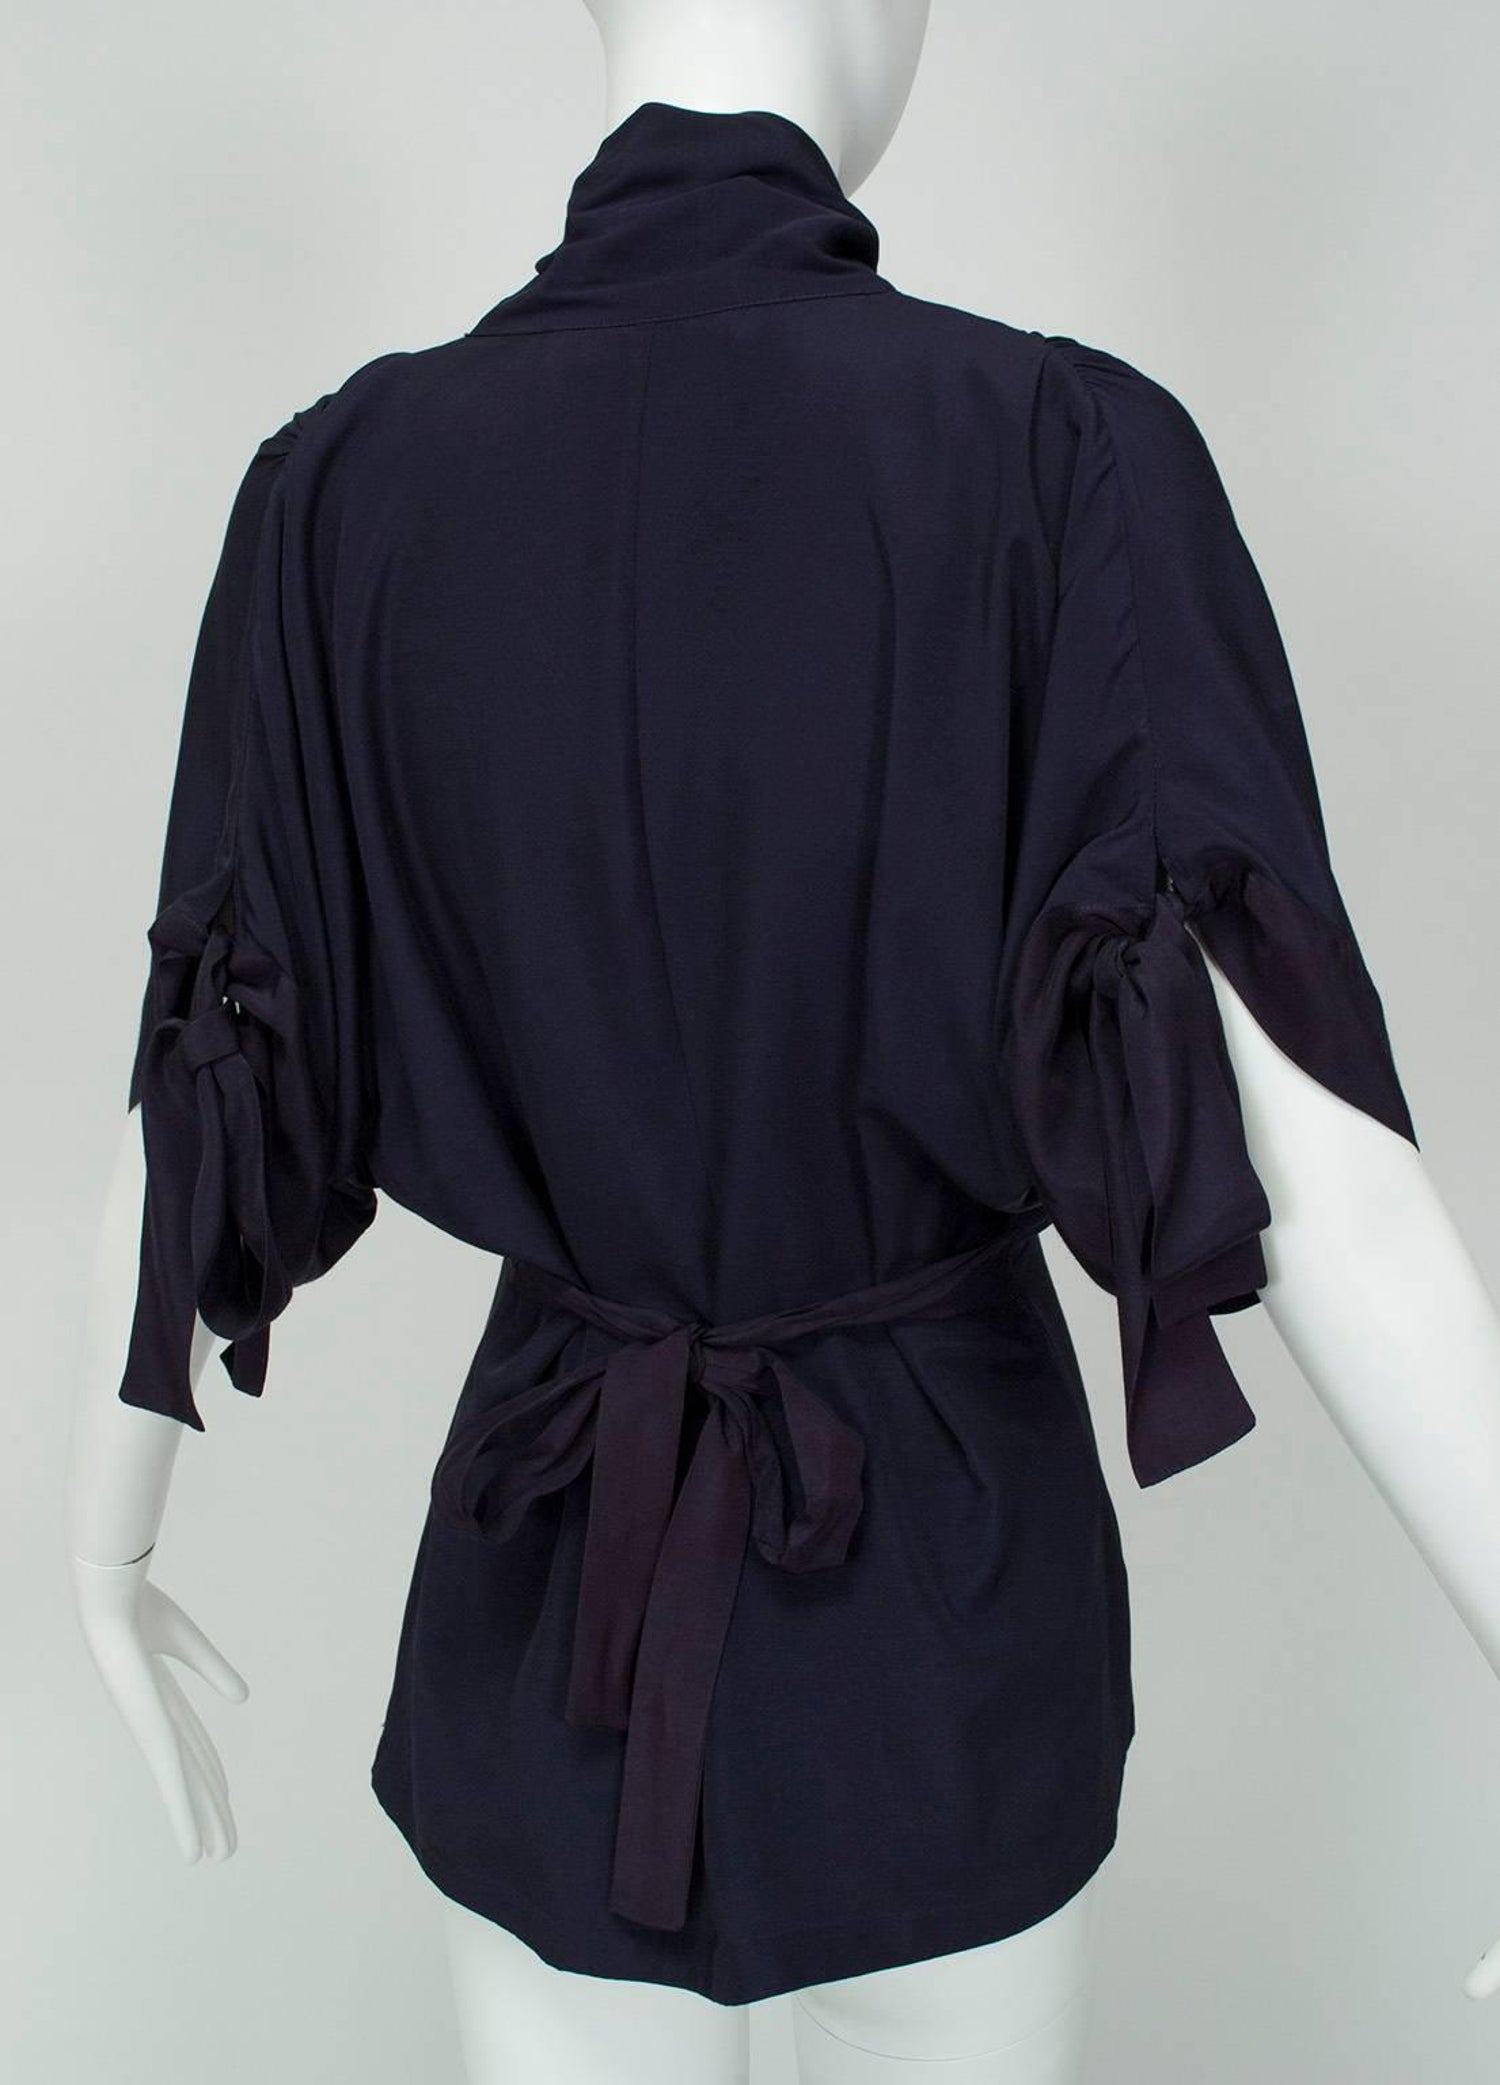 fdf31abe Norma Kamali Navy Peplum Blouse with Keyhole Pussy Bow, 1980s at 1stdibs